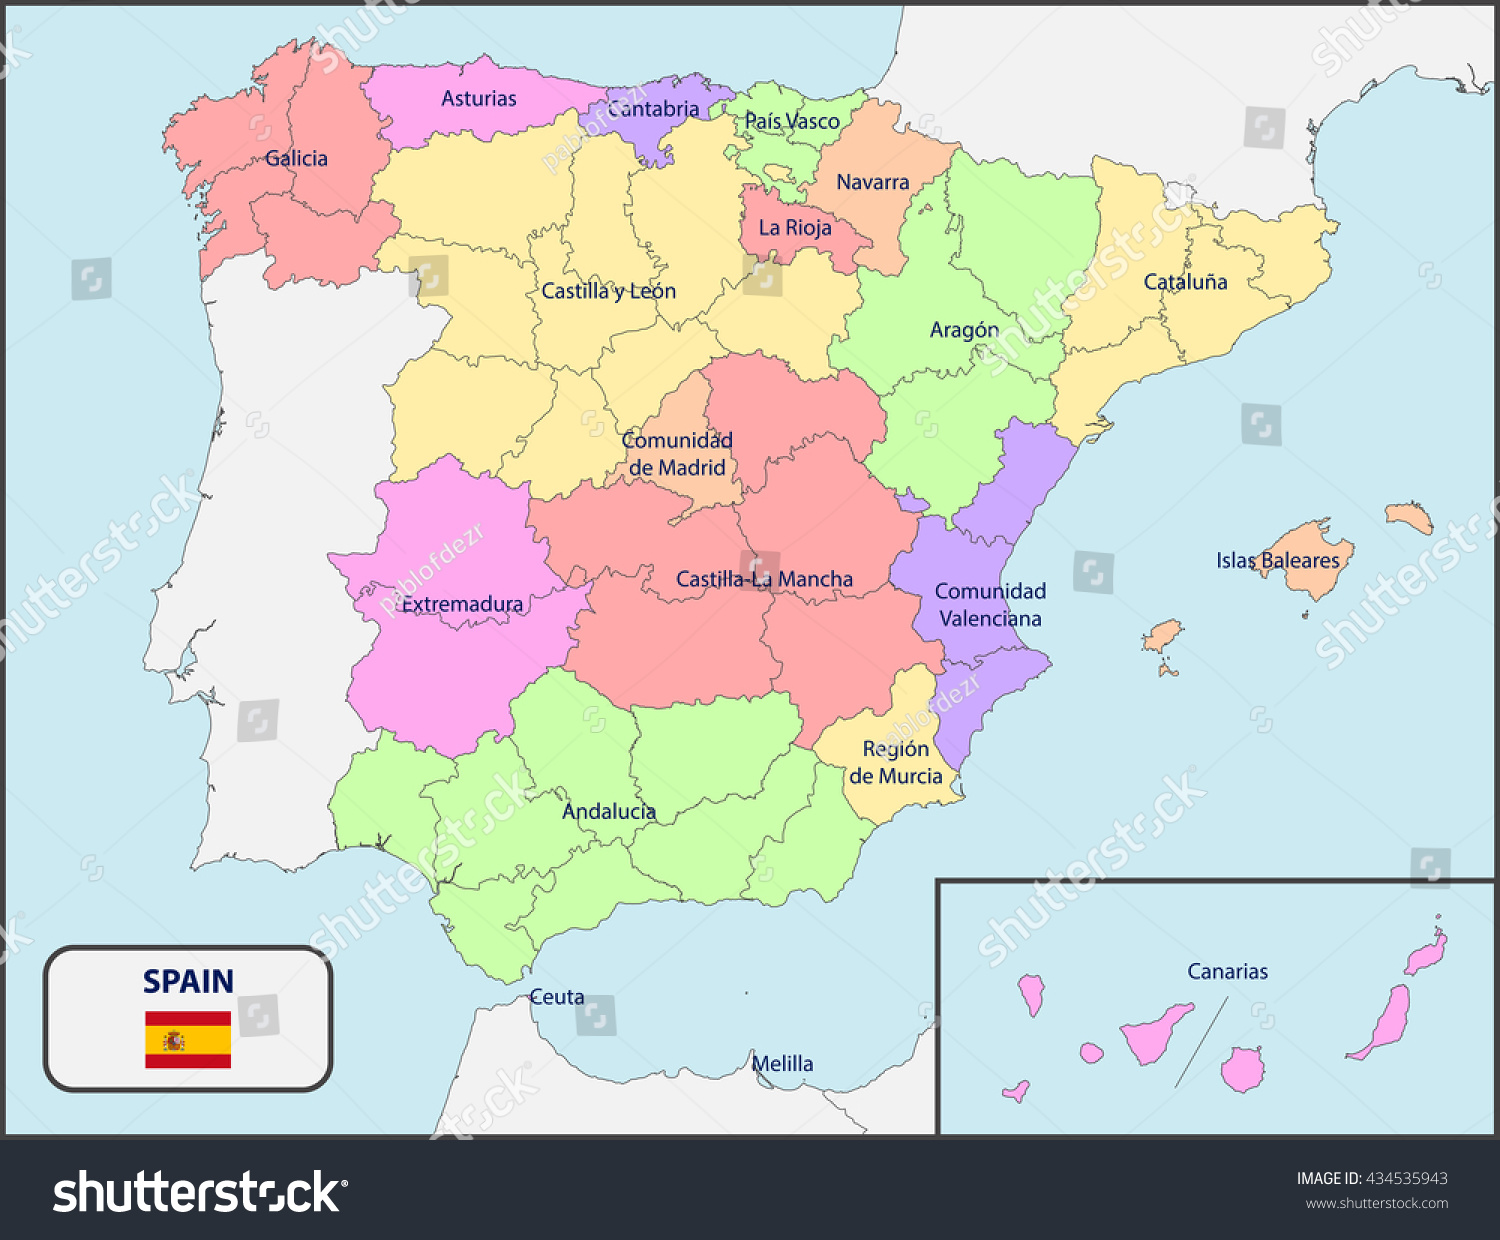 Political Map Spain Names Stock Vector Shutterstock - Spain political map